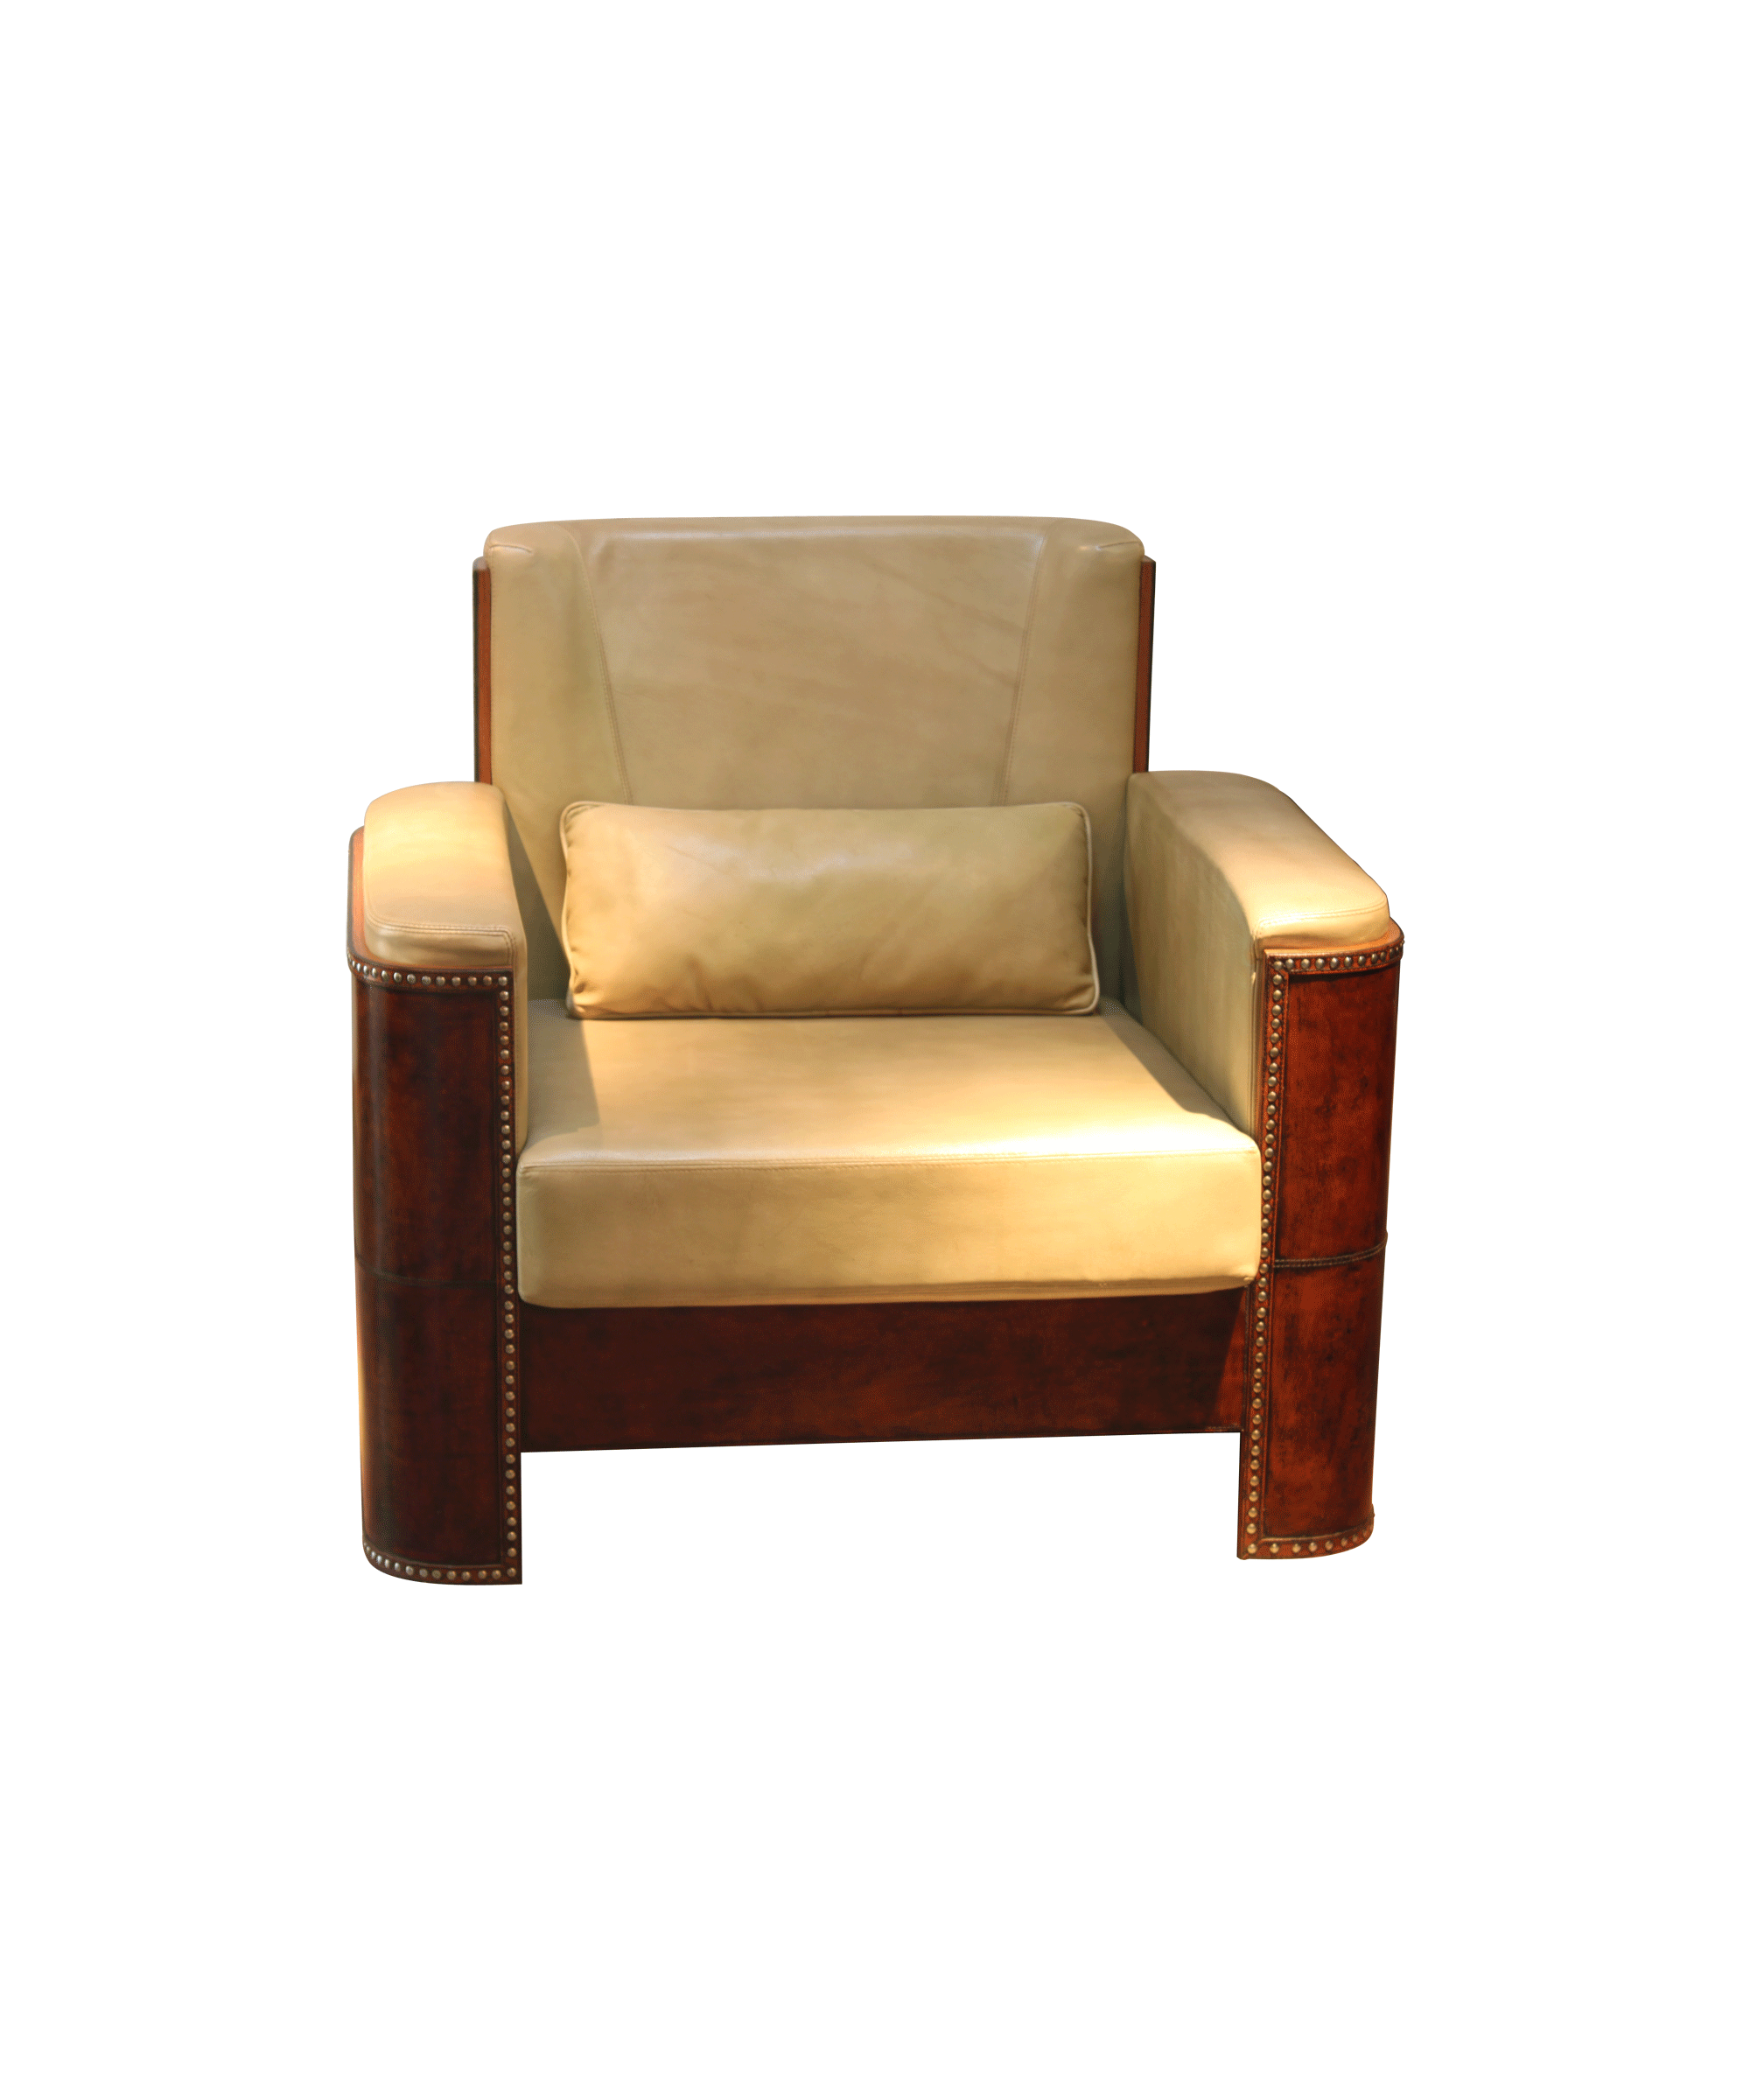 Superieur Starboard Sofa Single Seater 2